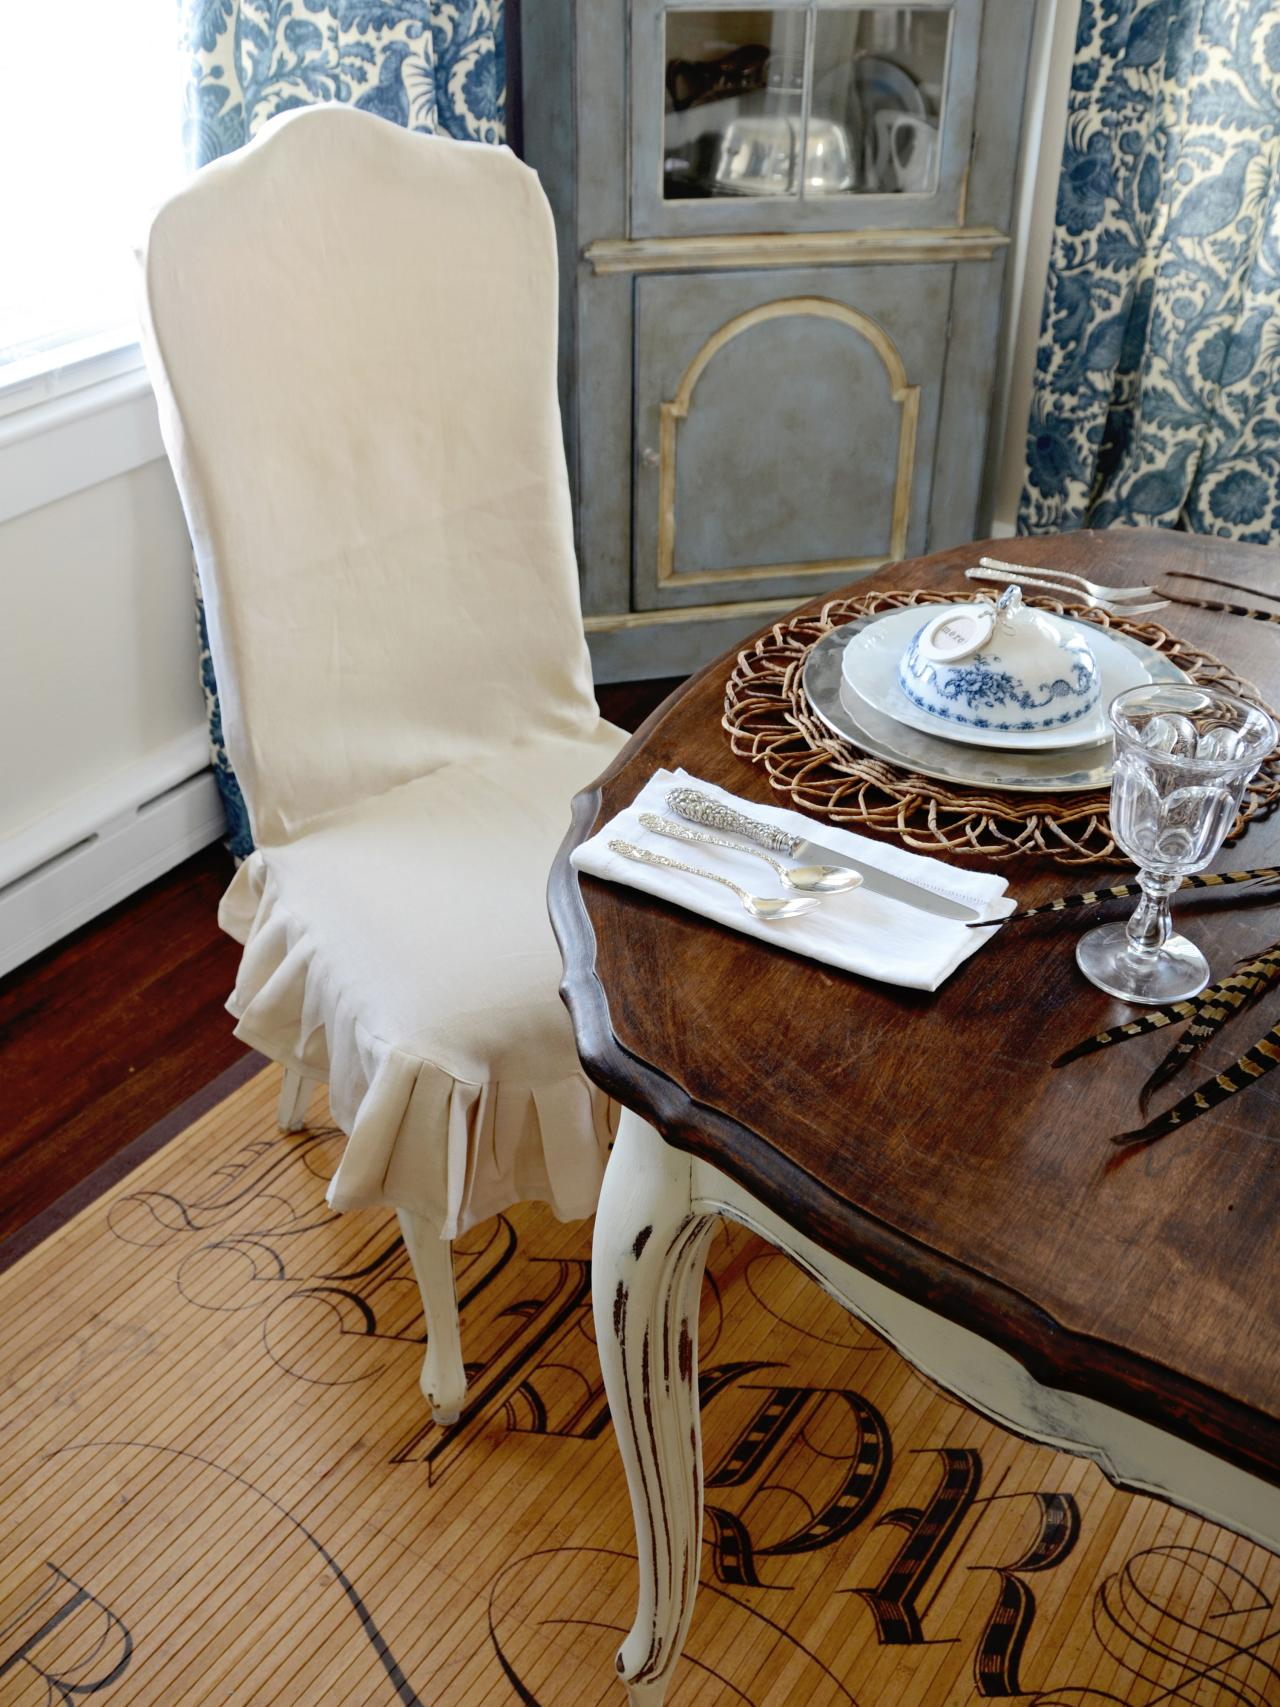 How to Make a Custom Dining Chair Slipcover HGTV : originalMarian Parsons Thanksgiving Slipcovered Chair Beauty1s3x4jpgrendhgtvcom12801707 from www.hgtv.com size 1280 x 1707 jpeg 278kB